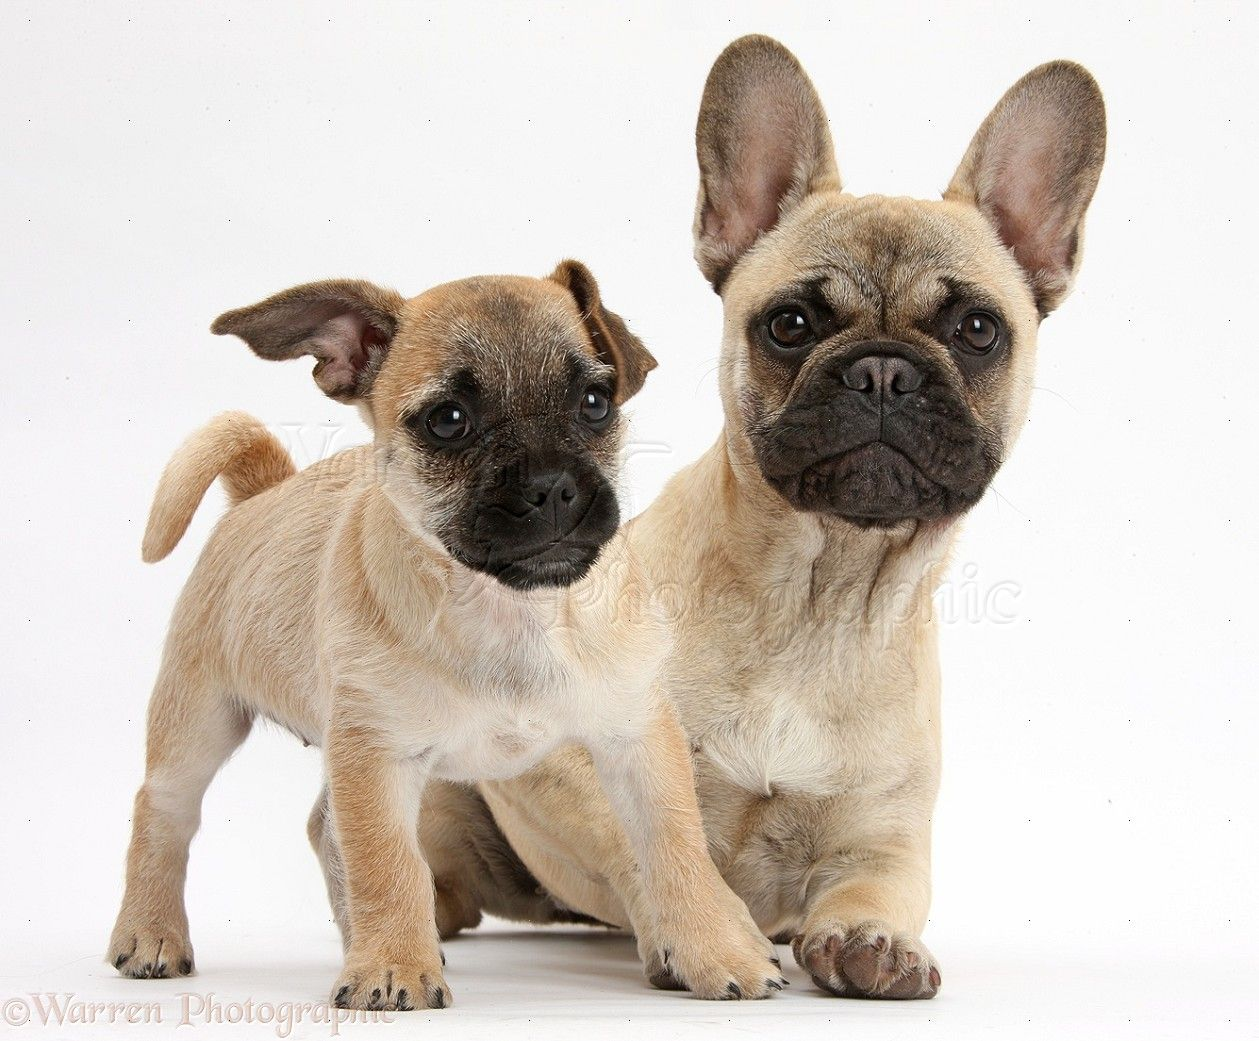 Cute Jug Puppy Puppies Doggy Dogs